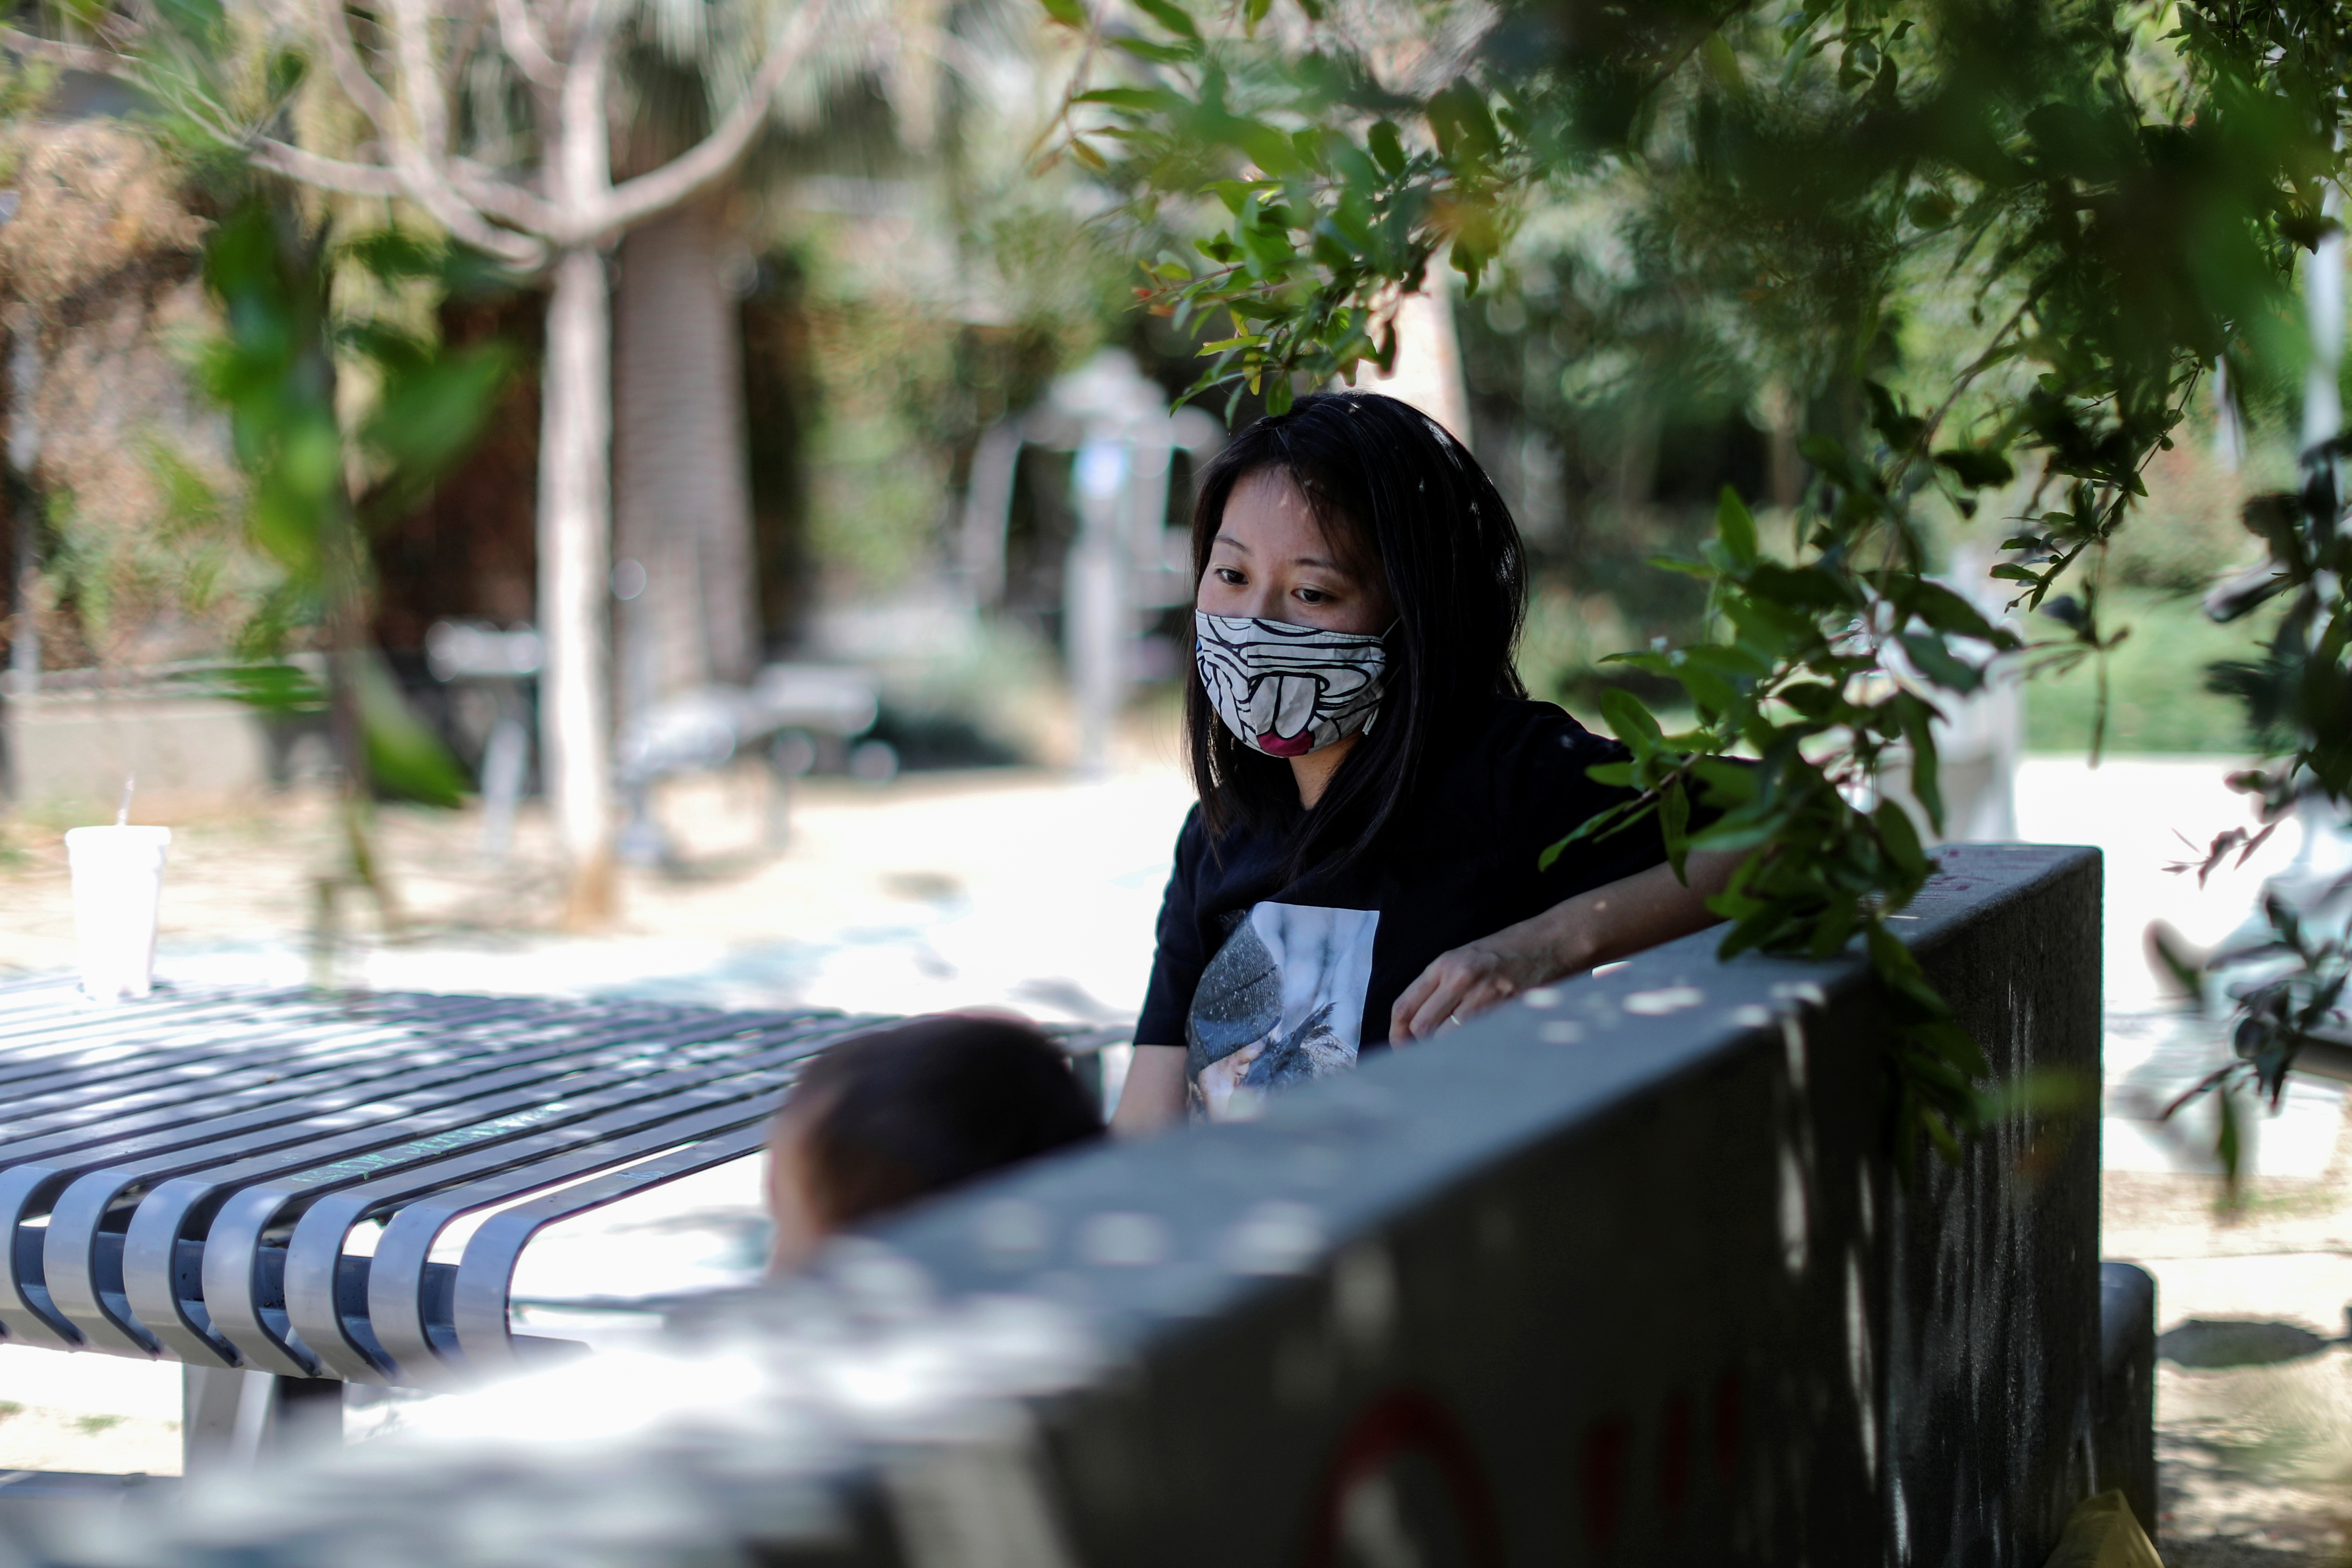 Tracy Park sits in the park in which she was shouted at with her daughter, as the coronavirus disease (COVID-19) pandemic continues, in Hollywood, Los Angeles, California, U.S., April 27, 2021. PIcture taken April 27, 2021. REUTERS/Lucy Nicholson